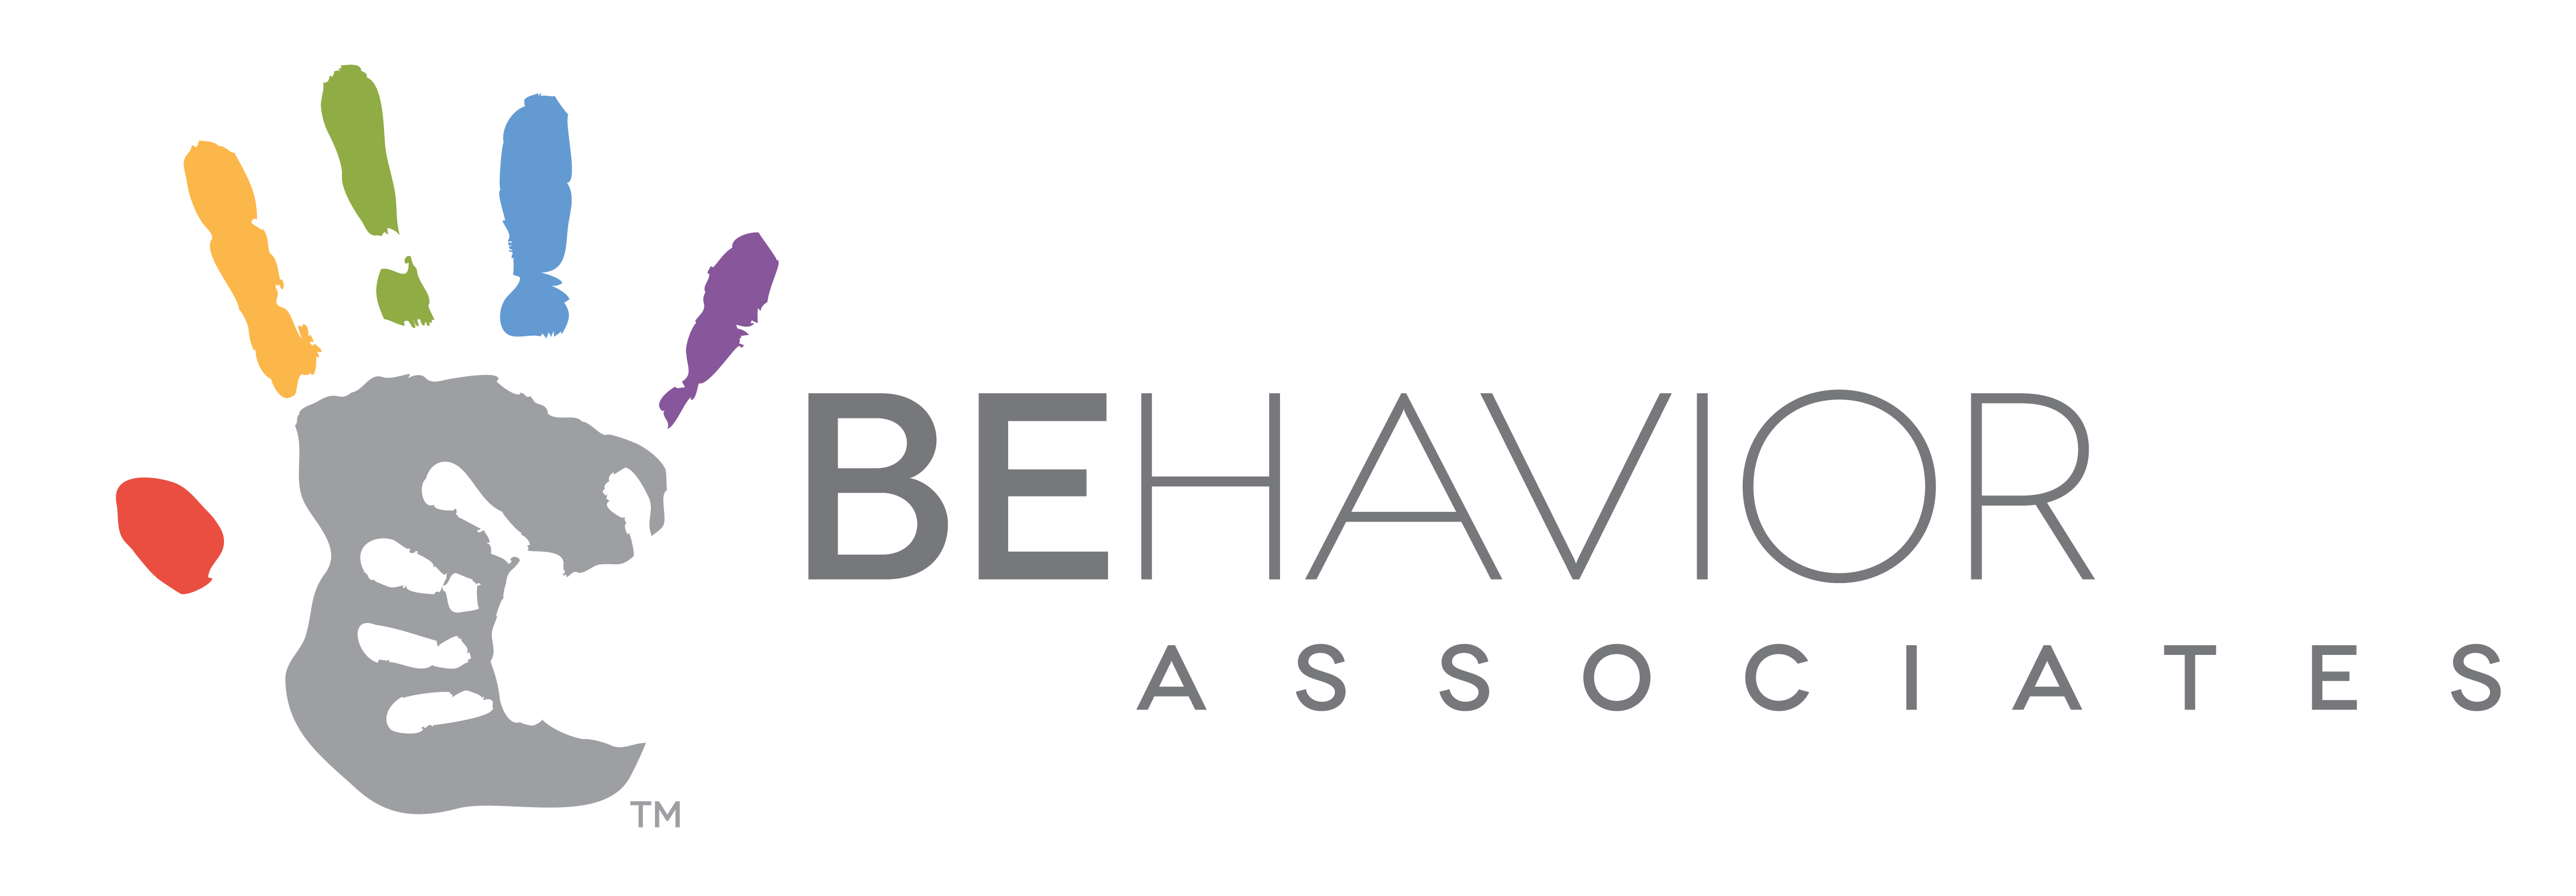 Behavior Associates of Indiana